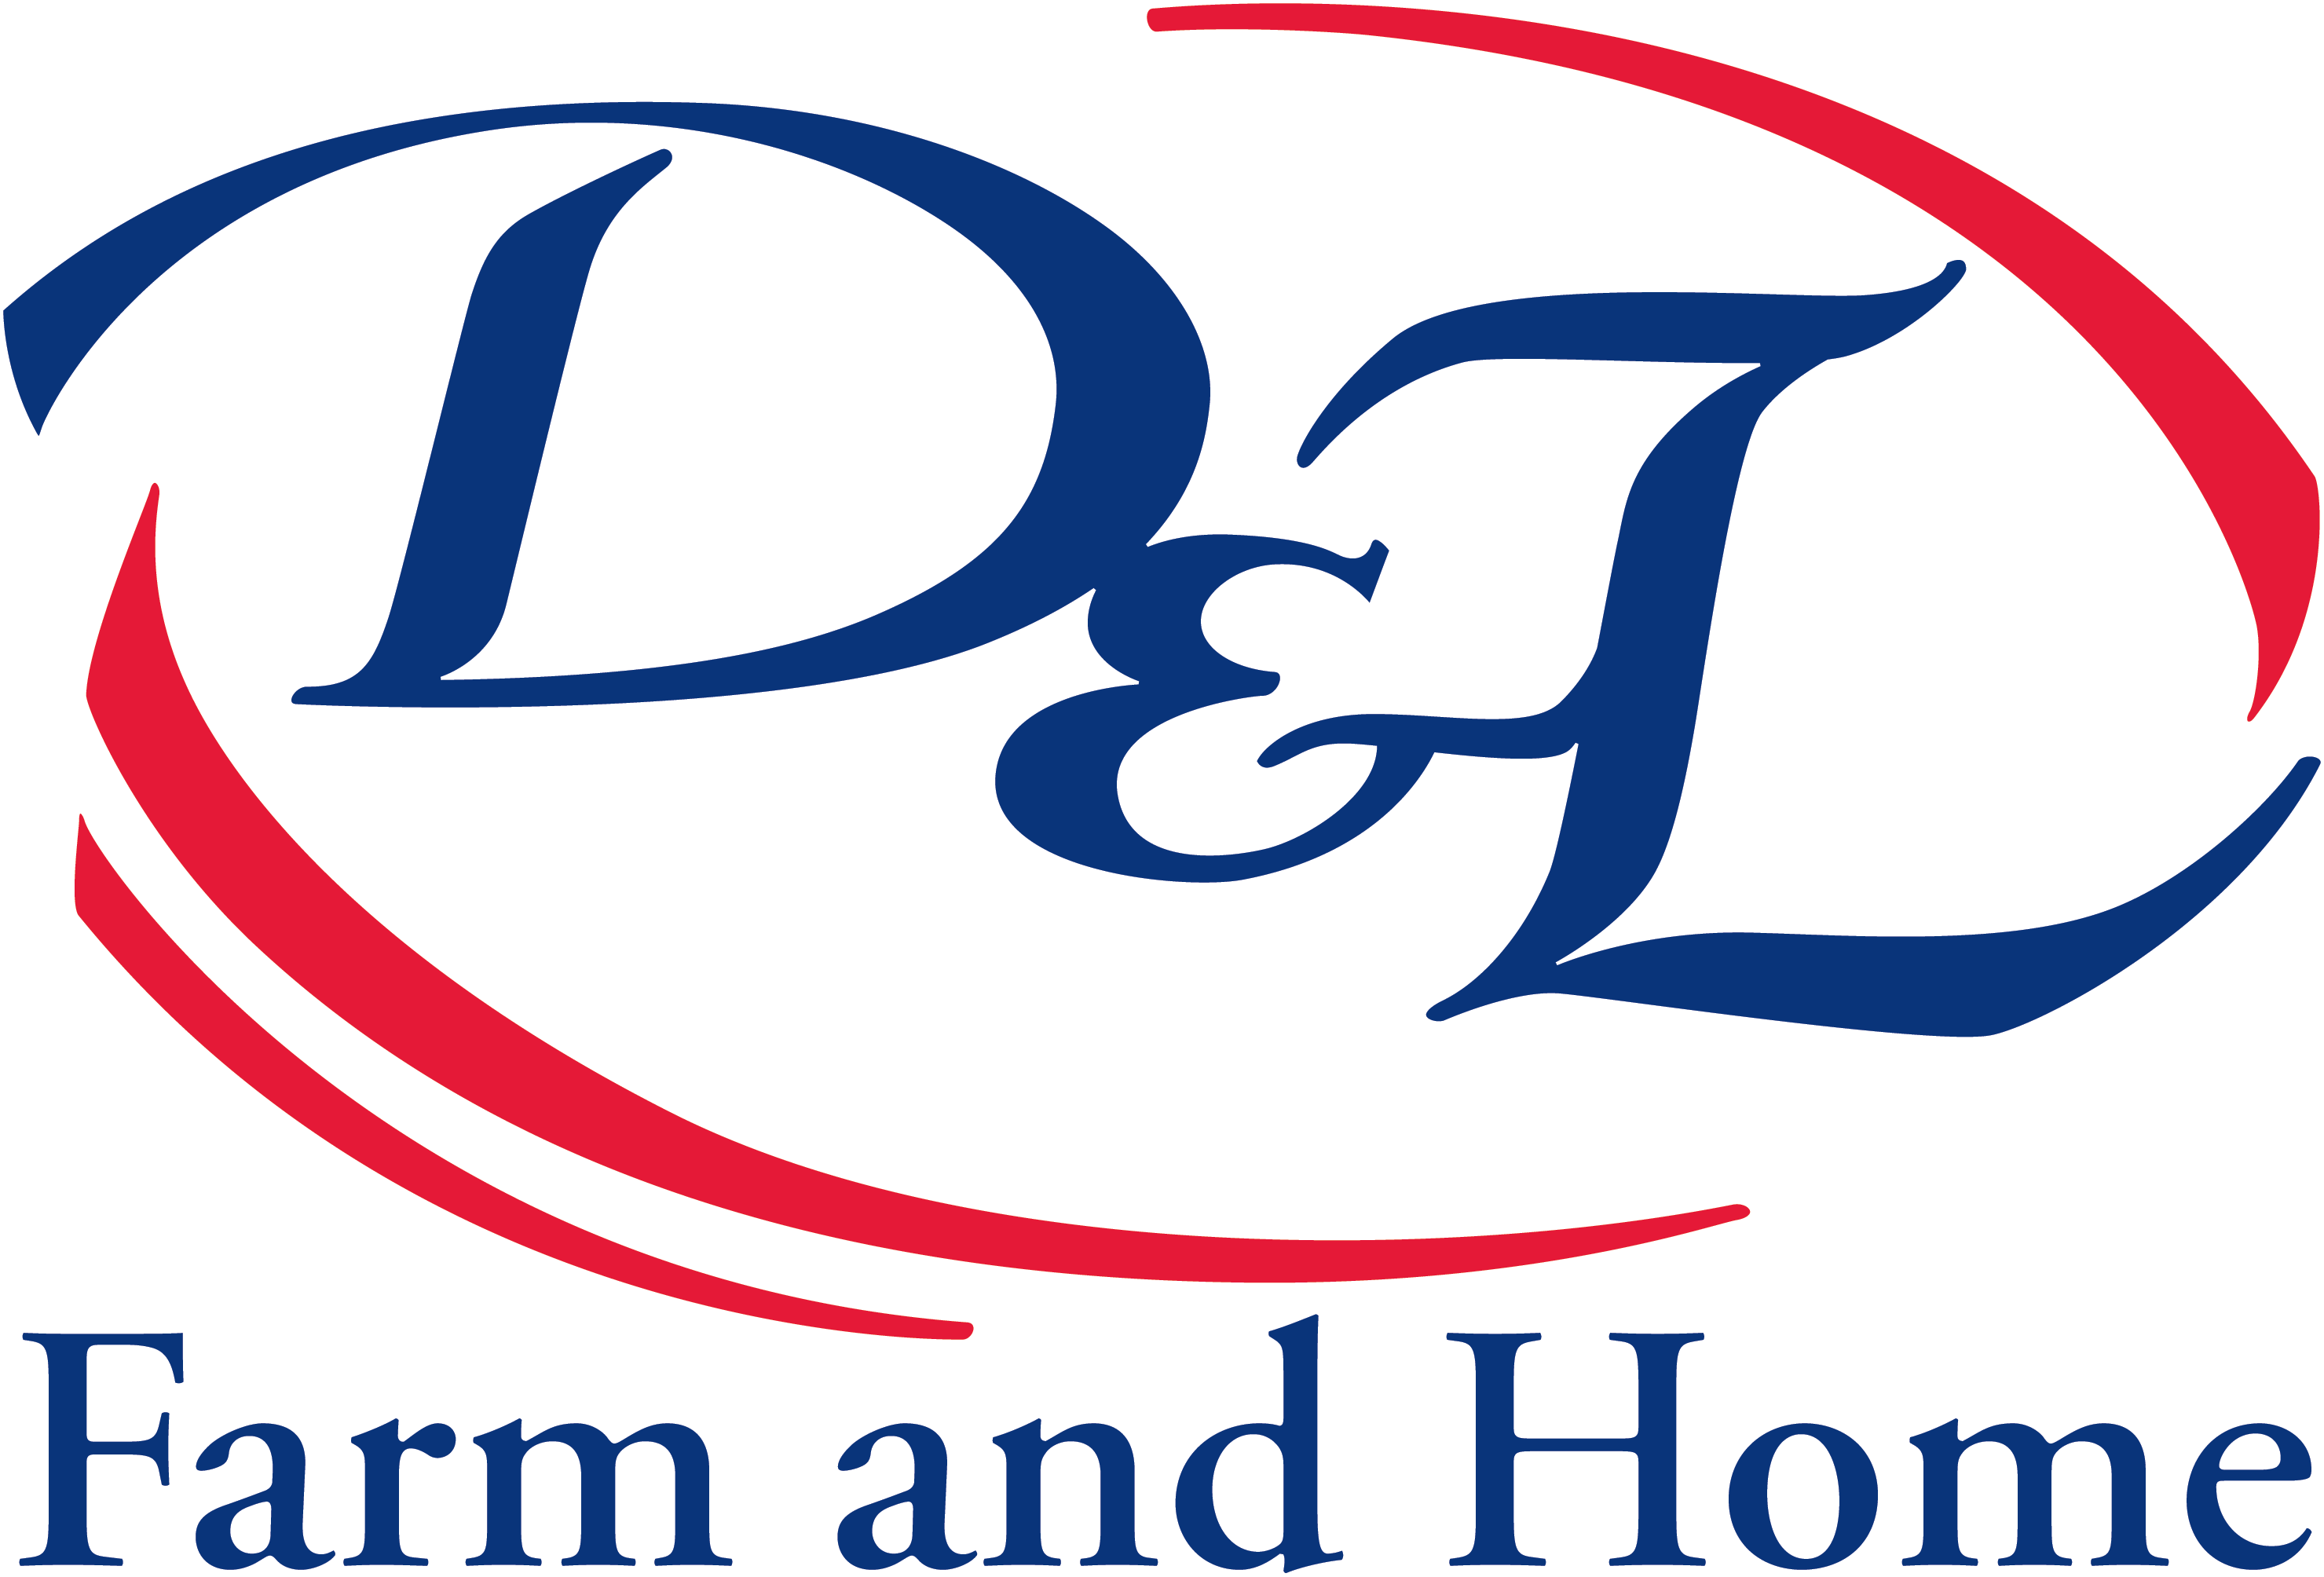 Company logo for 'D&L Farm and Home Inc Gainesville'.